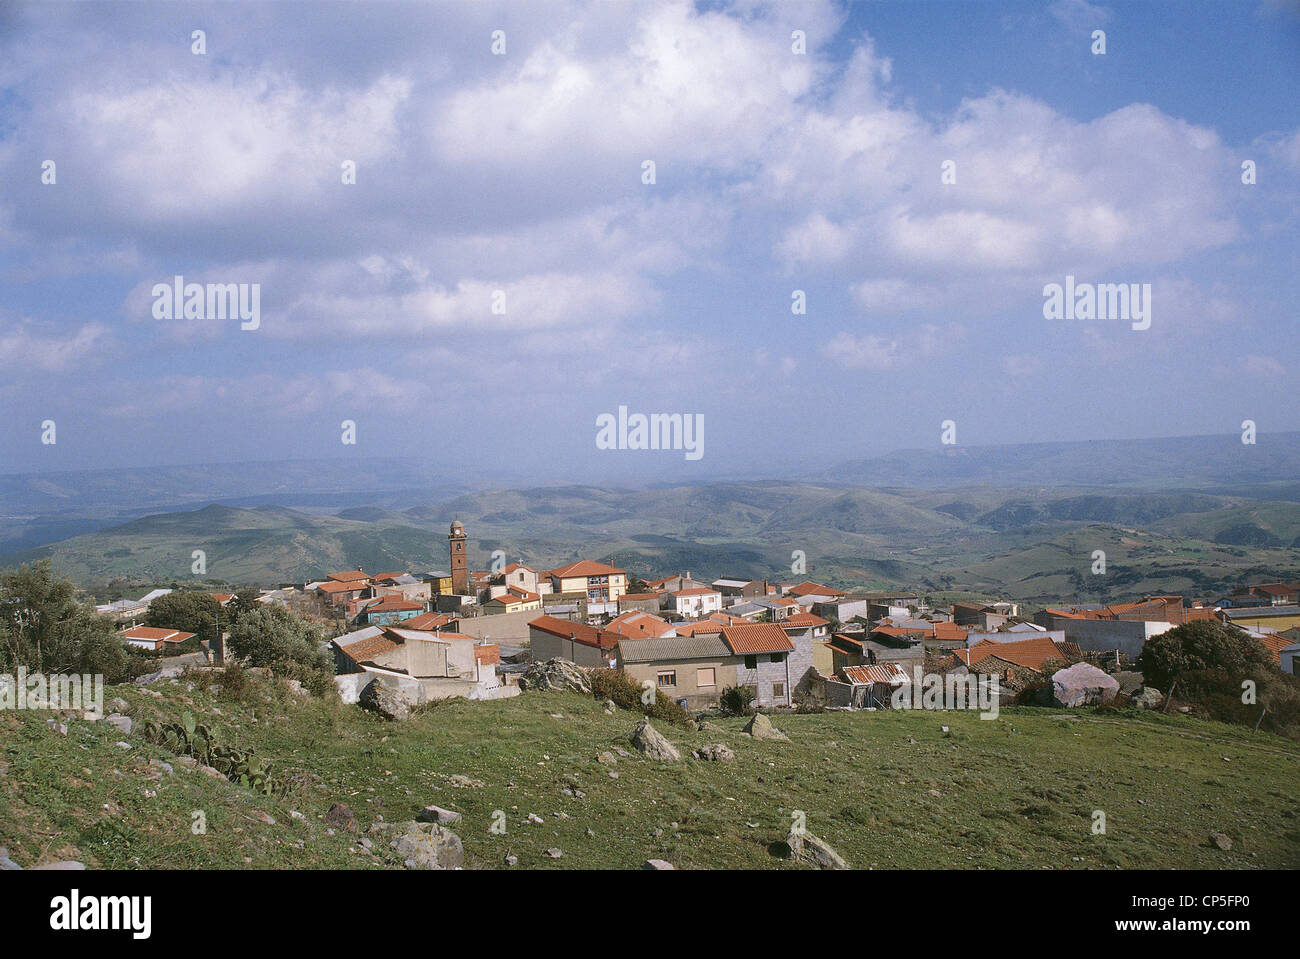 Sardinia - Morgantown (Or). Stock Photo